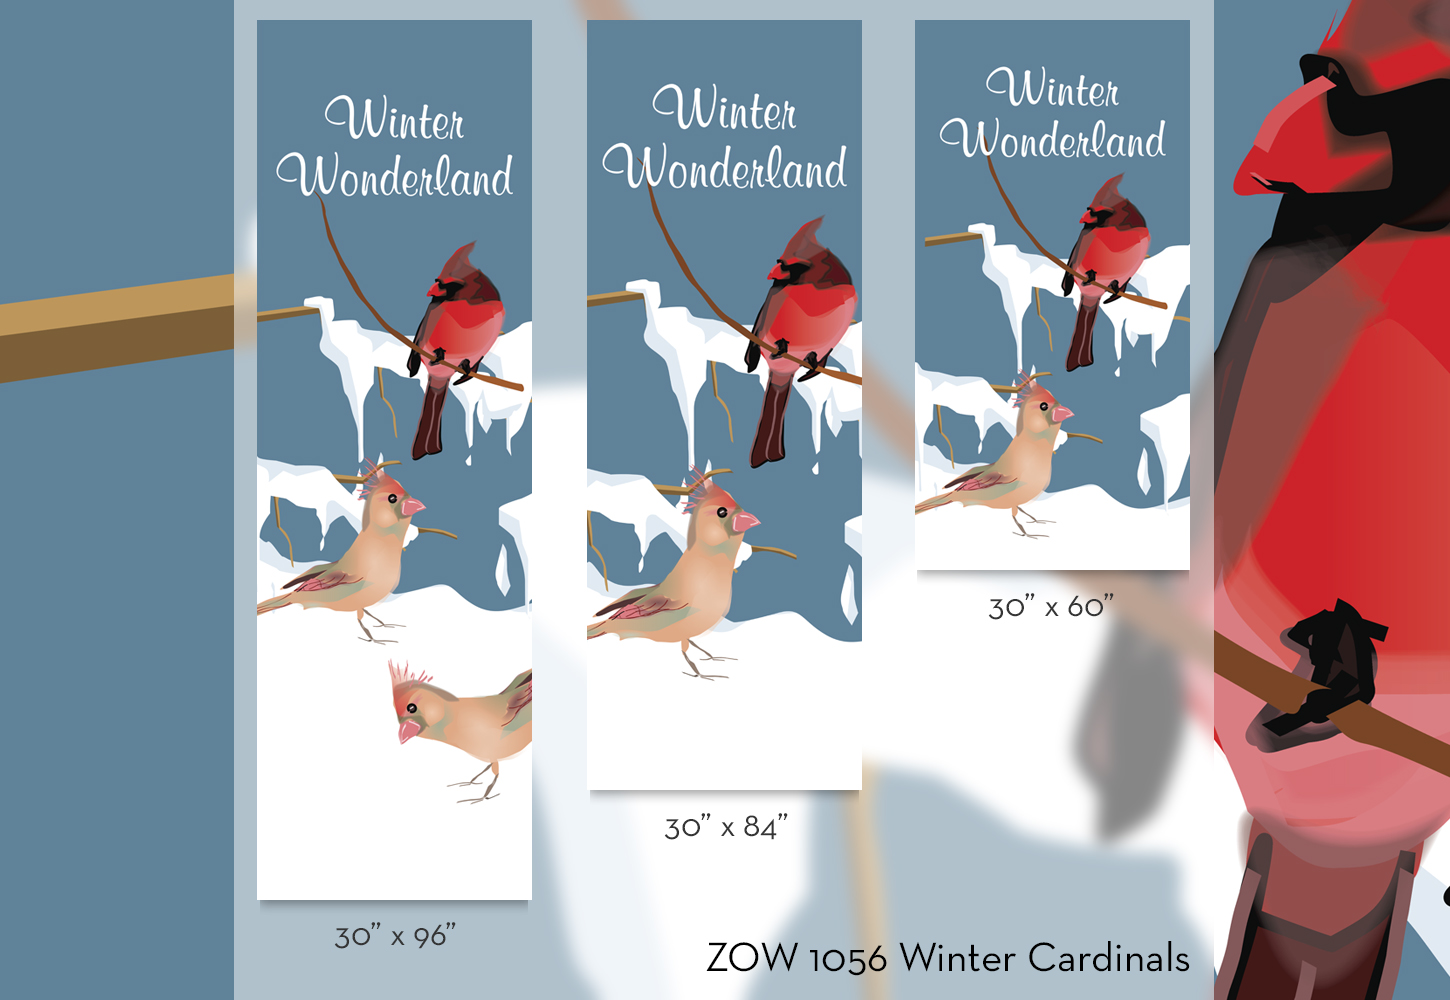 ZOW 1056 Winter Cardinals